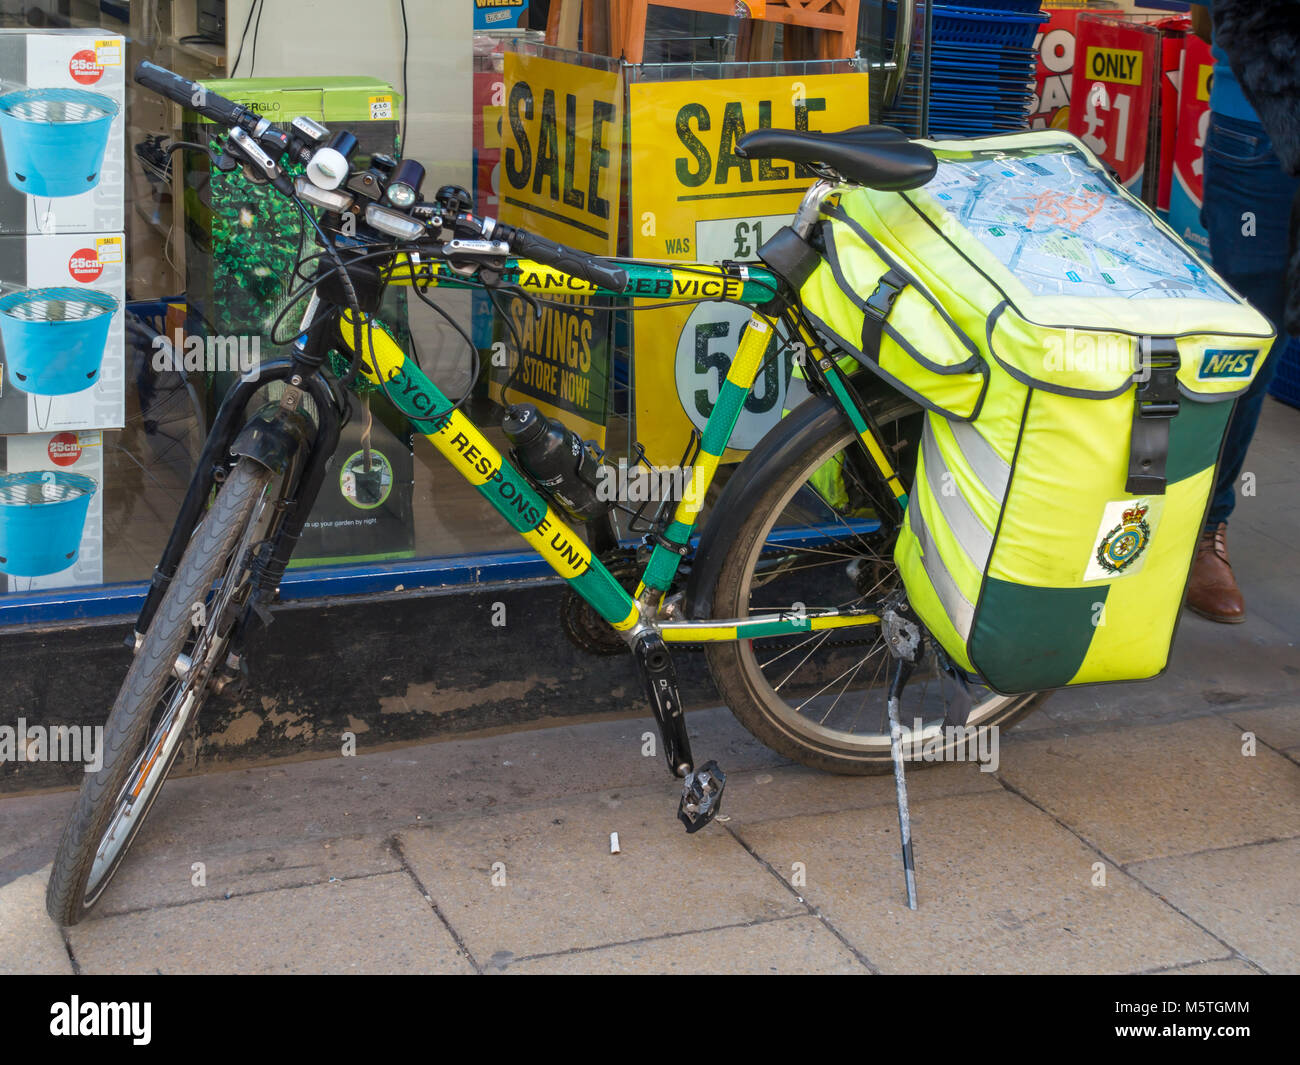 NHS National Health Service Emergency Response Ambulance service bicycle for providing support in city centre not - Stock Image